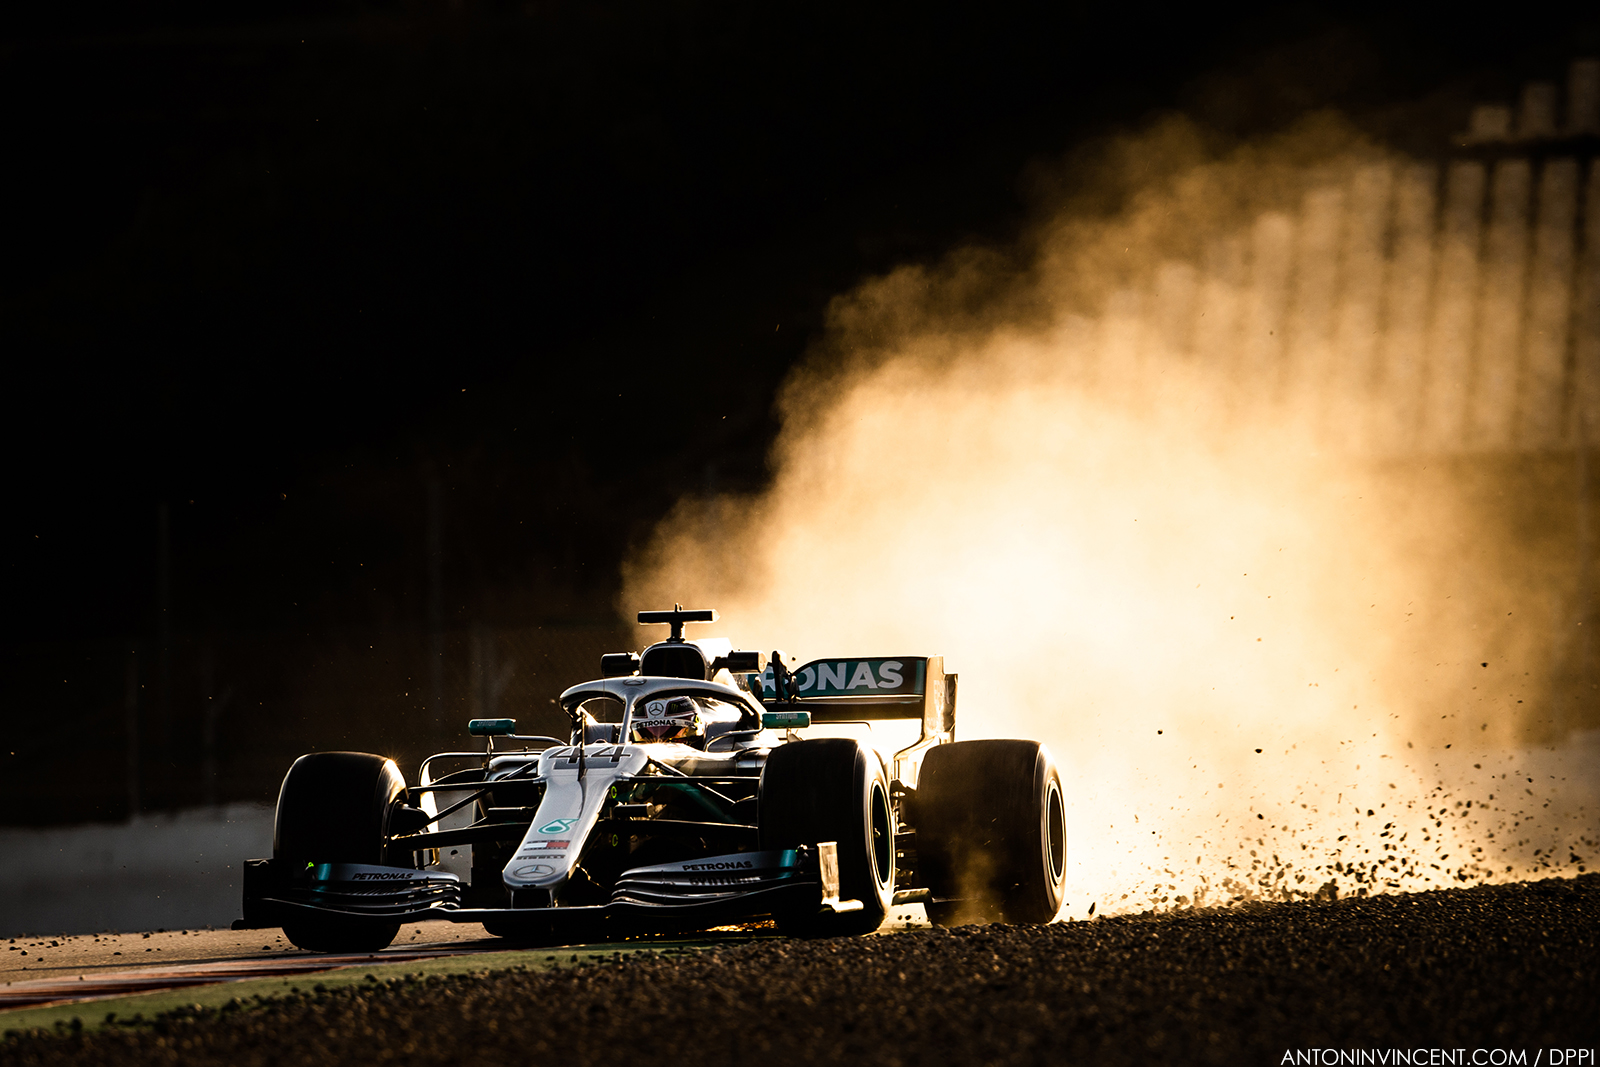 44 HAMILTON Lewis (gbr), Mercedes AMG F1 GP W10 Hybrid EQ Power+, action during Formula 1 winter tests from February 18 to 21, 2019 at Barcelona, Spain - Photo Antonin Vincent / DPPI